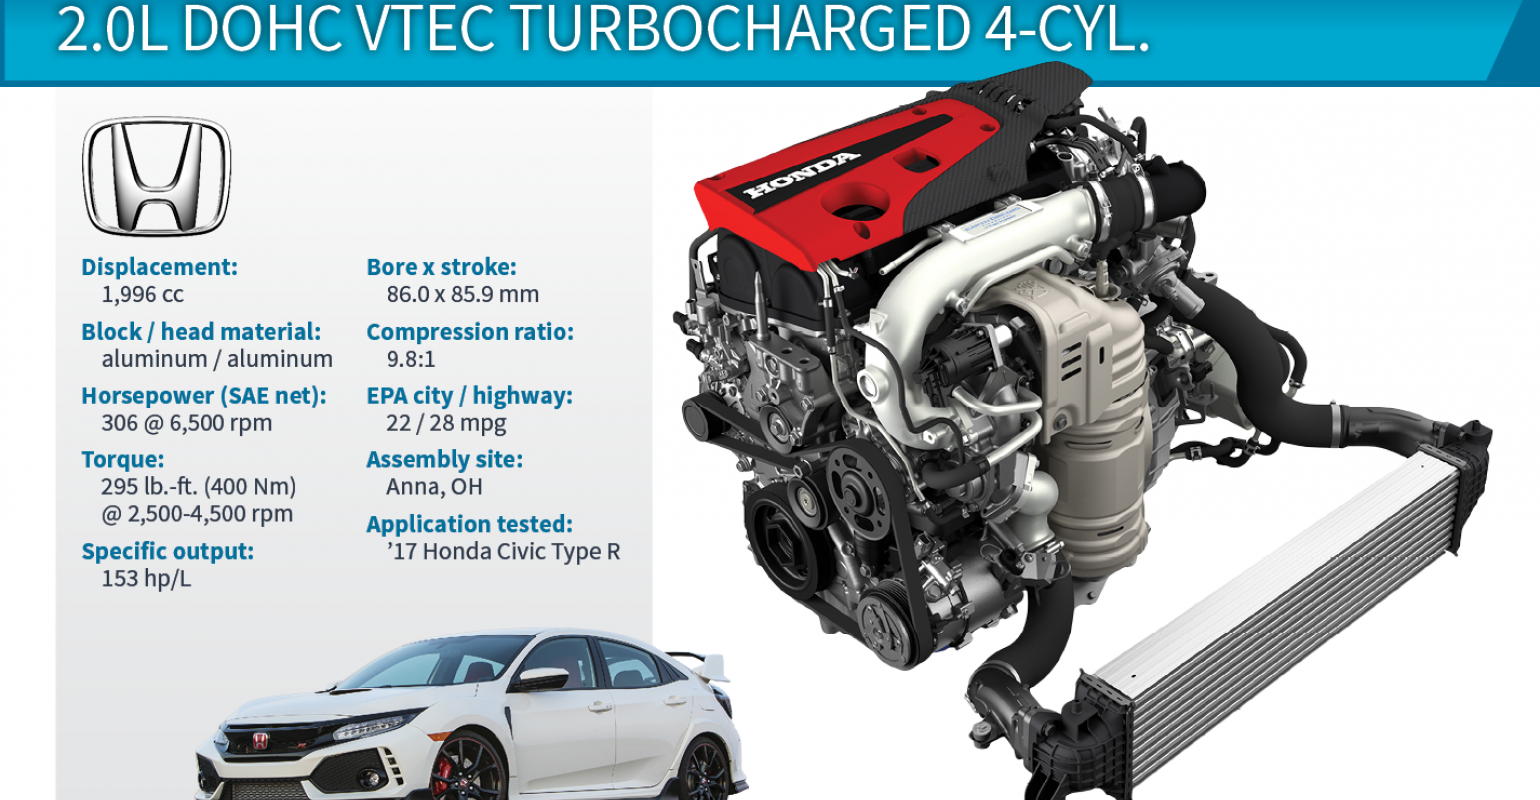 Wards 10 Best Engines Winner | Honda Civic Type R 2 0L VTEC